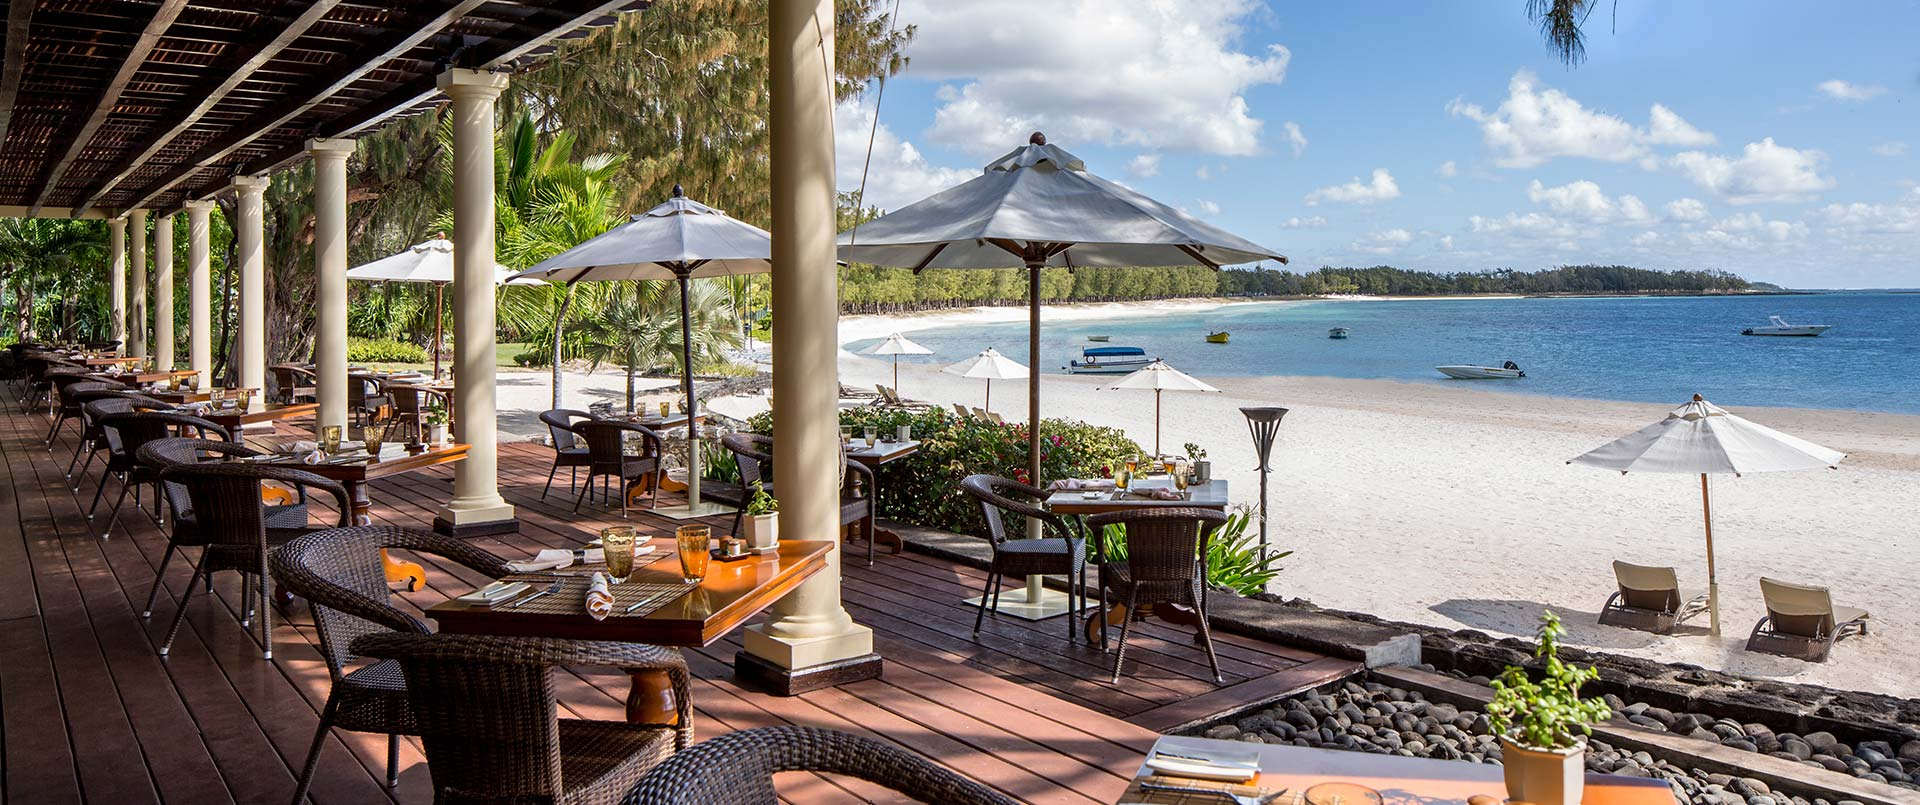 The Residence, Belle Mare, Mauritius